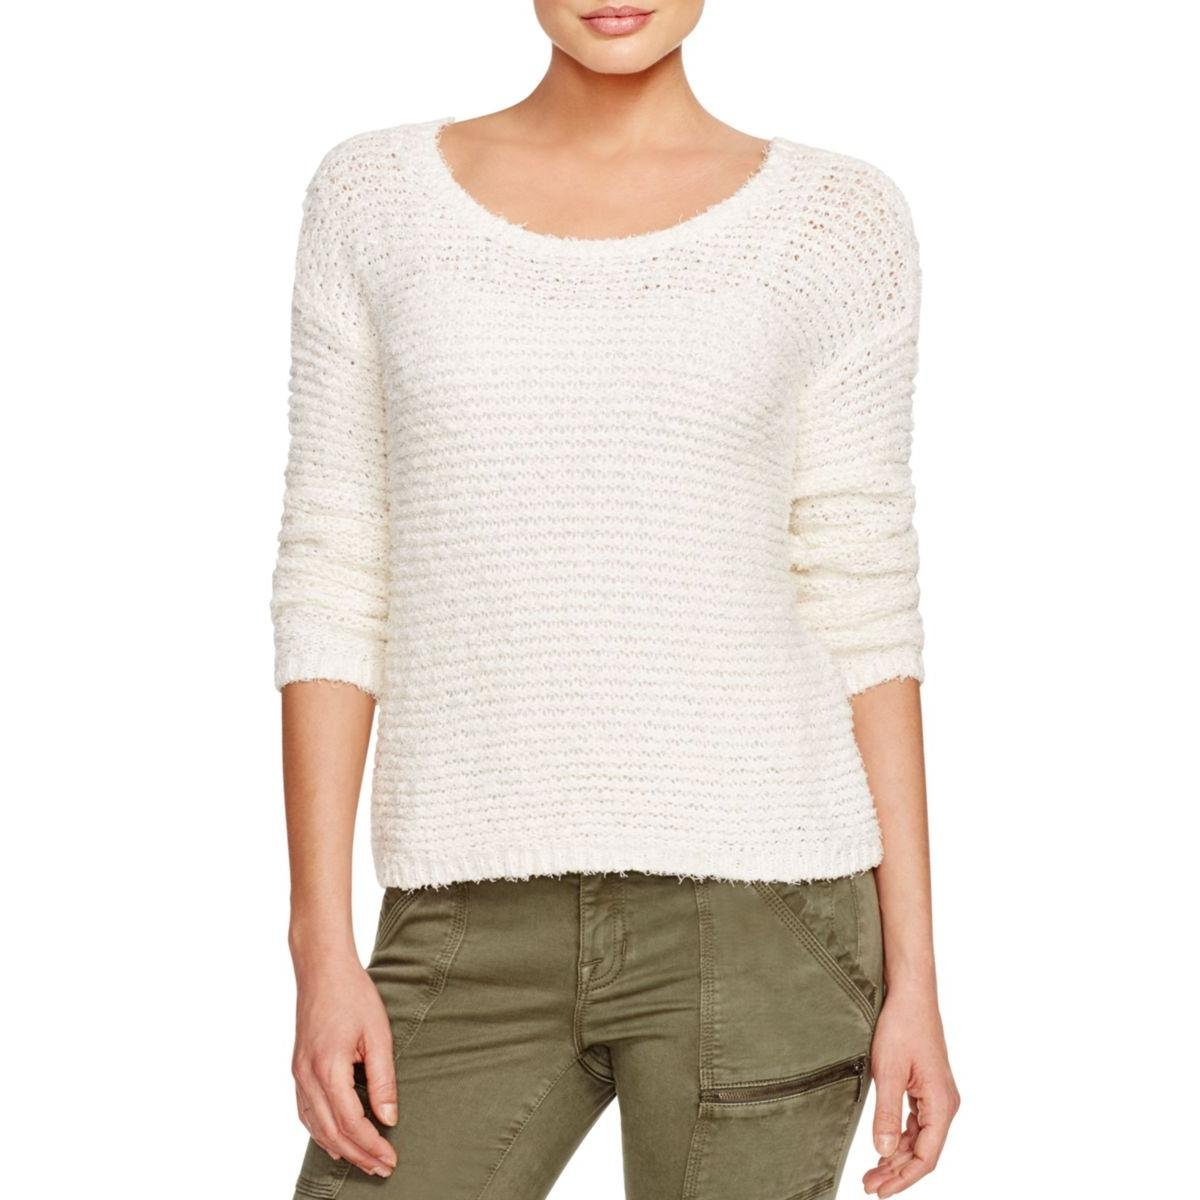 Joie Womens Anais Fringe Cotton Pullover Top Ivory XS by Joie